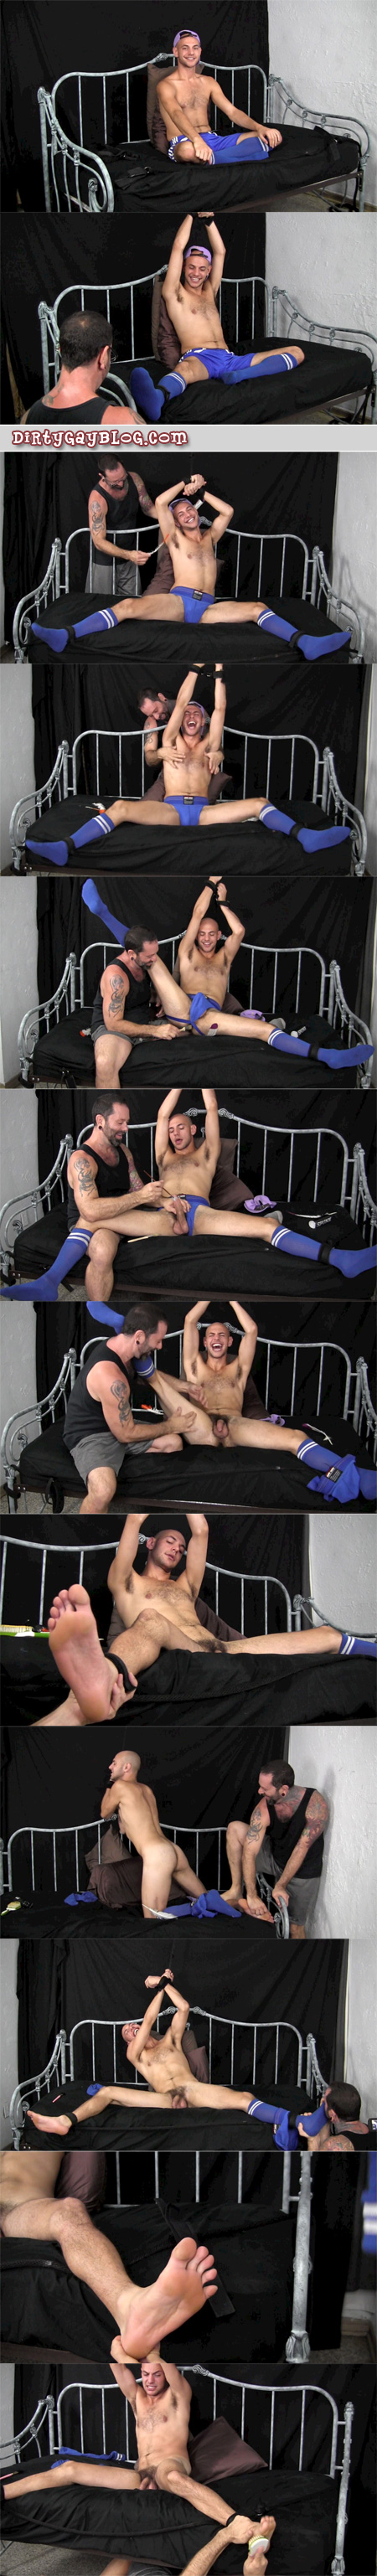 Attractive athlete has his hands tied above his head and is tickled all over in his athletic shorts, jock and socks.